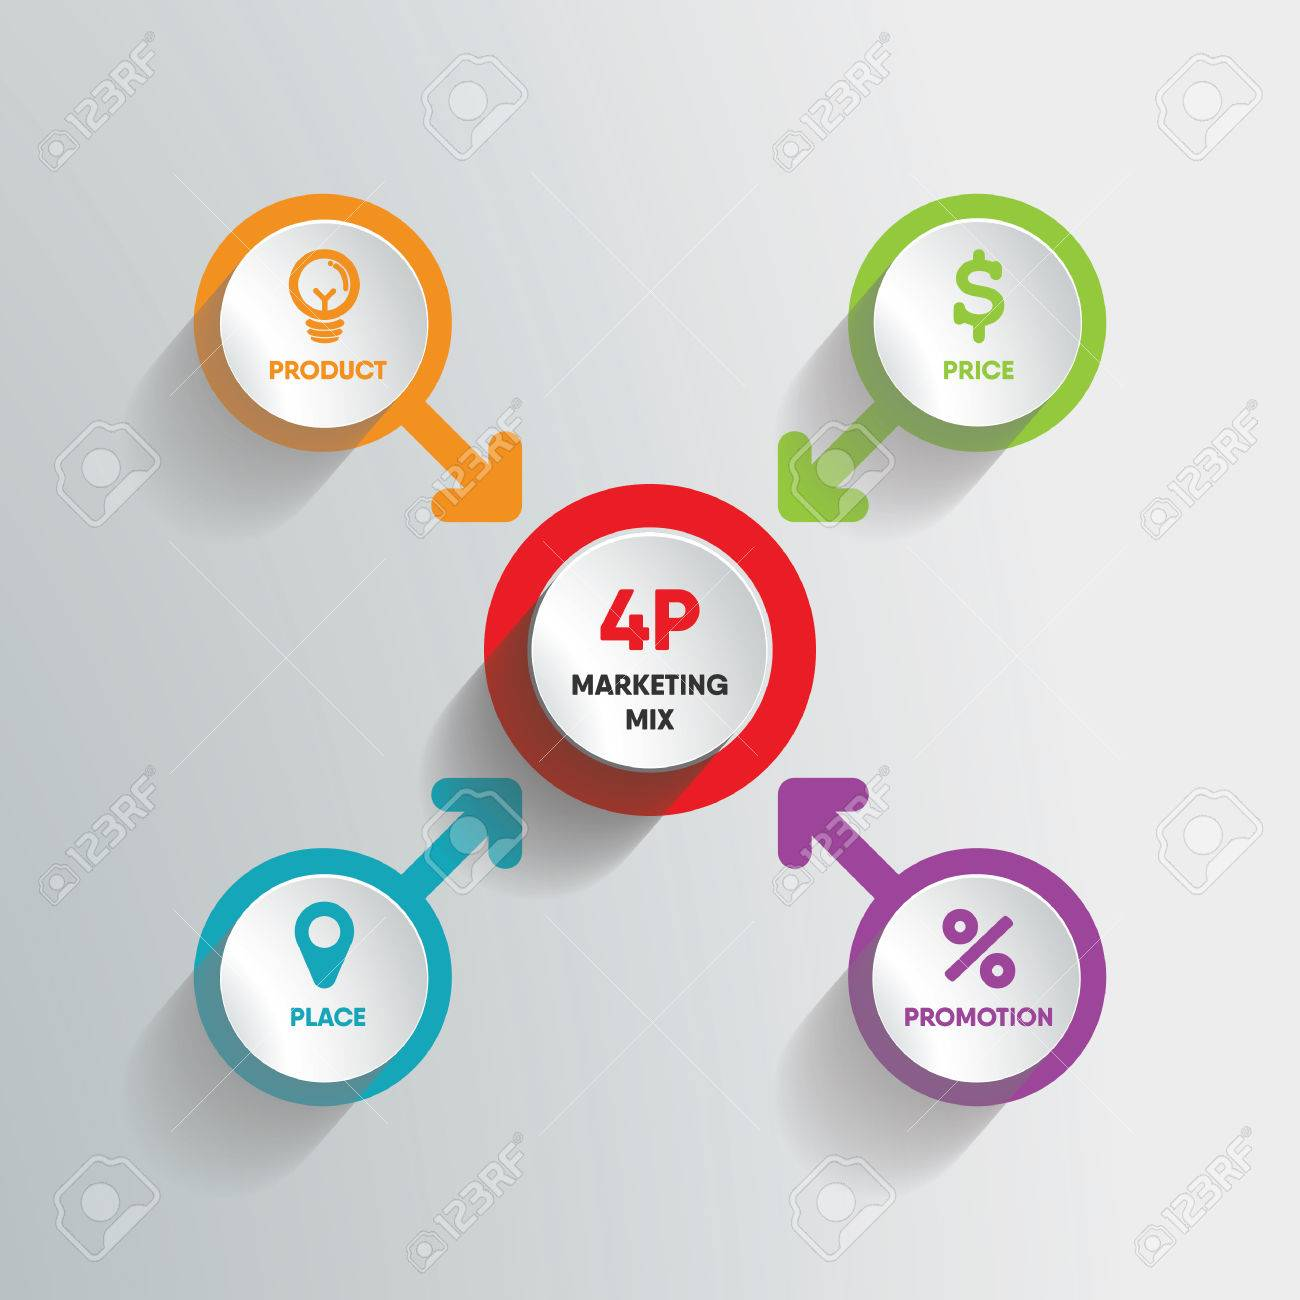 4p product price place promotion bachelorarbeit disposition beispiel